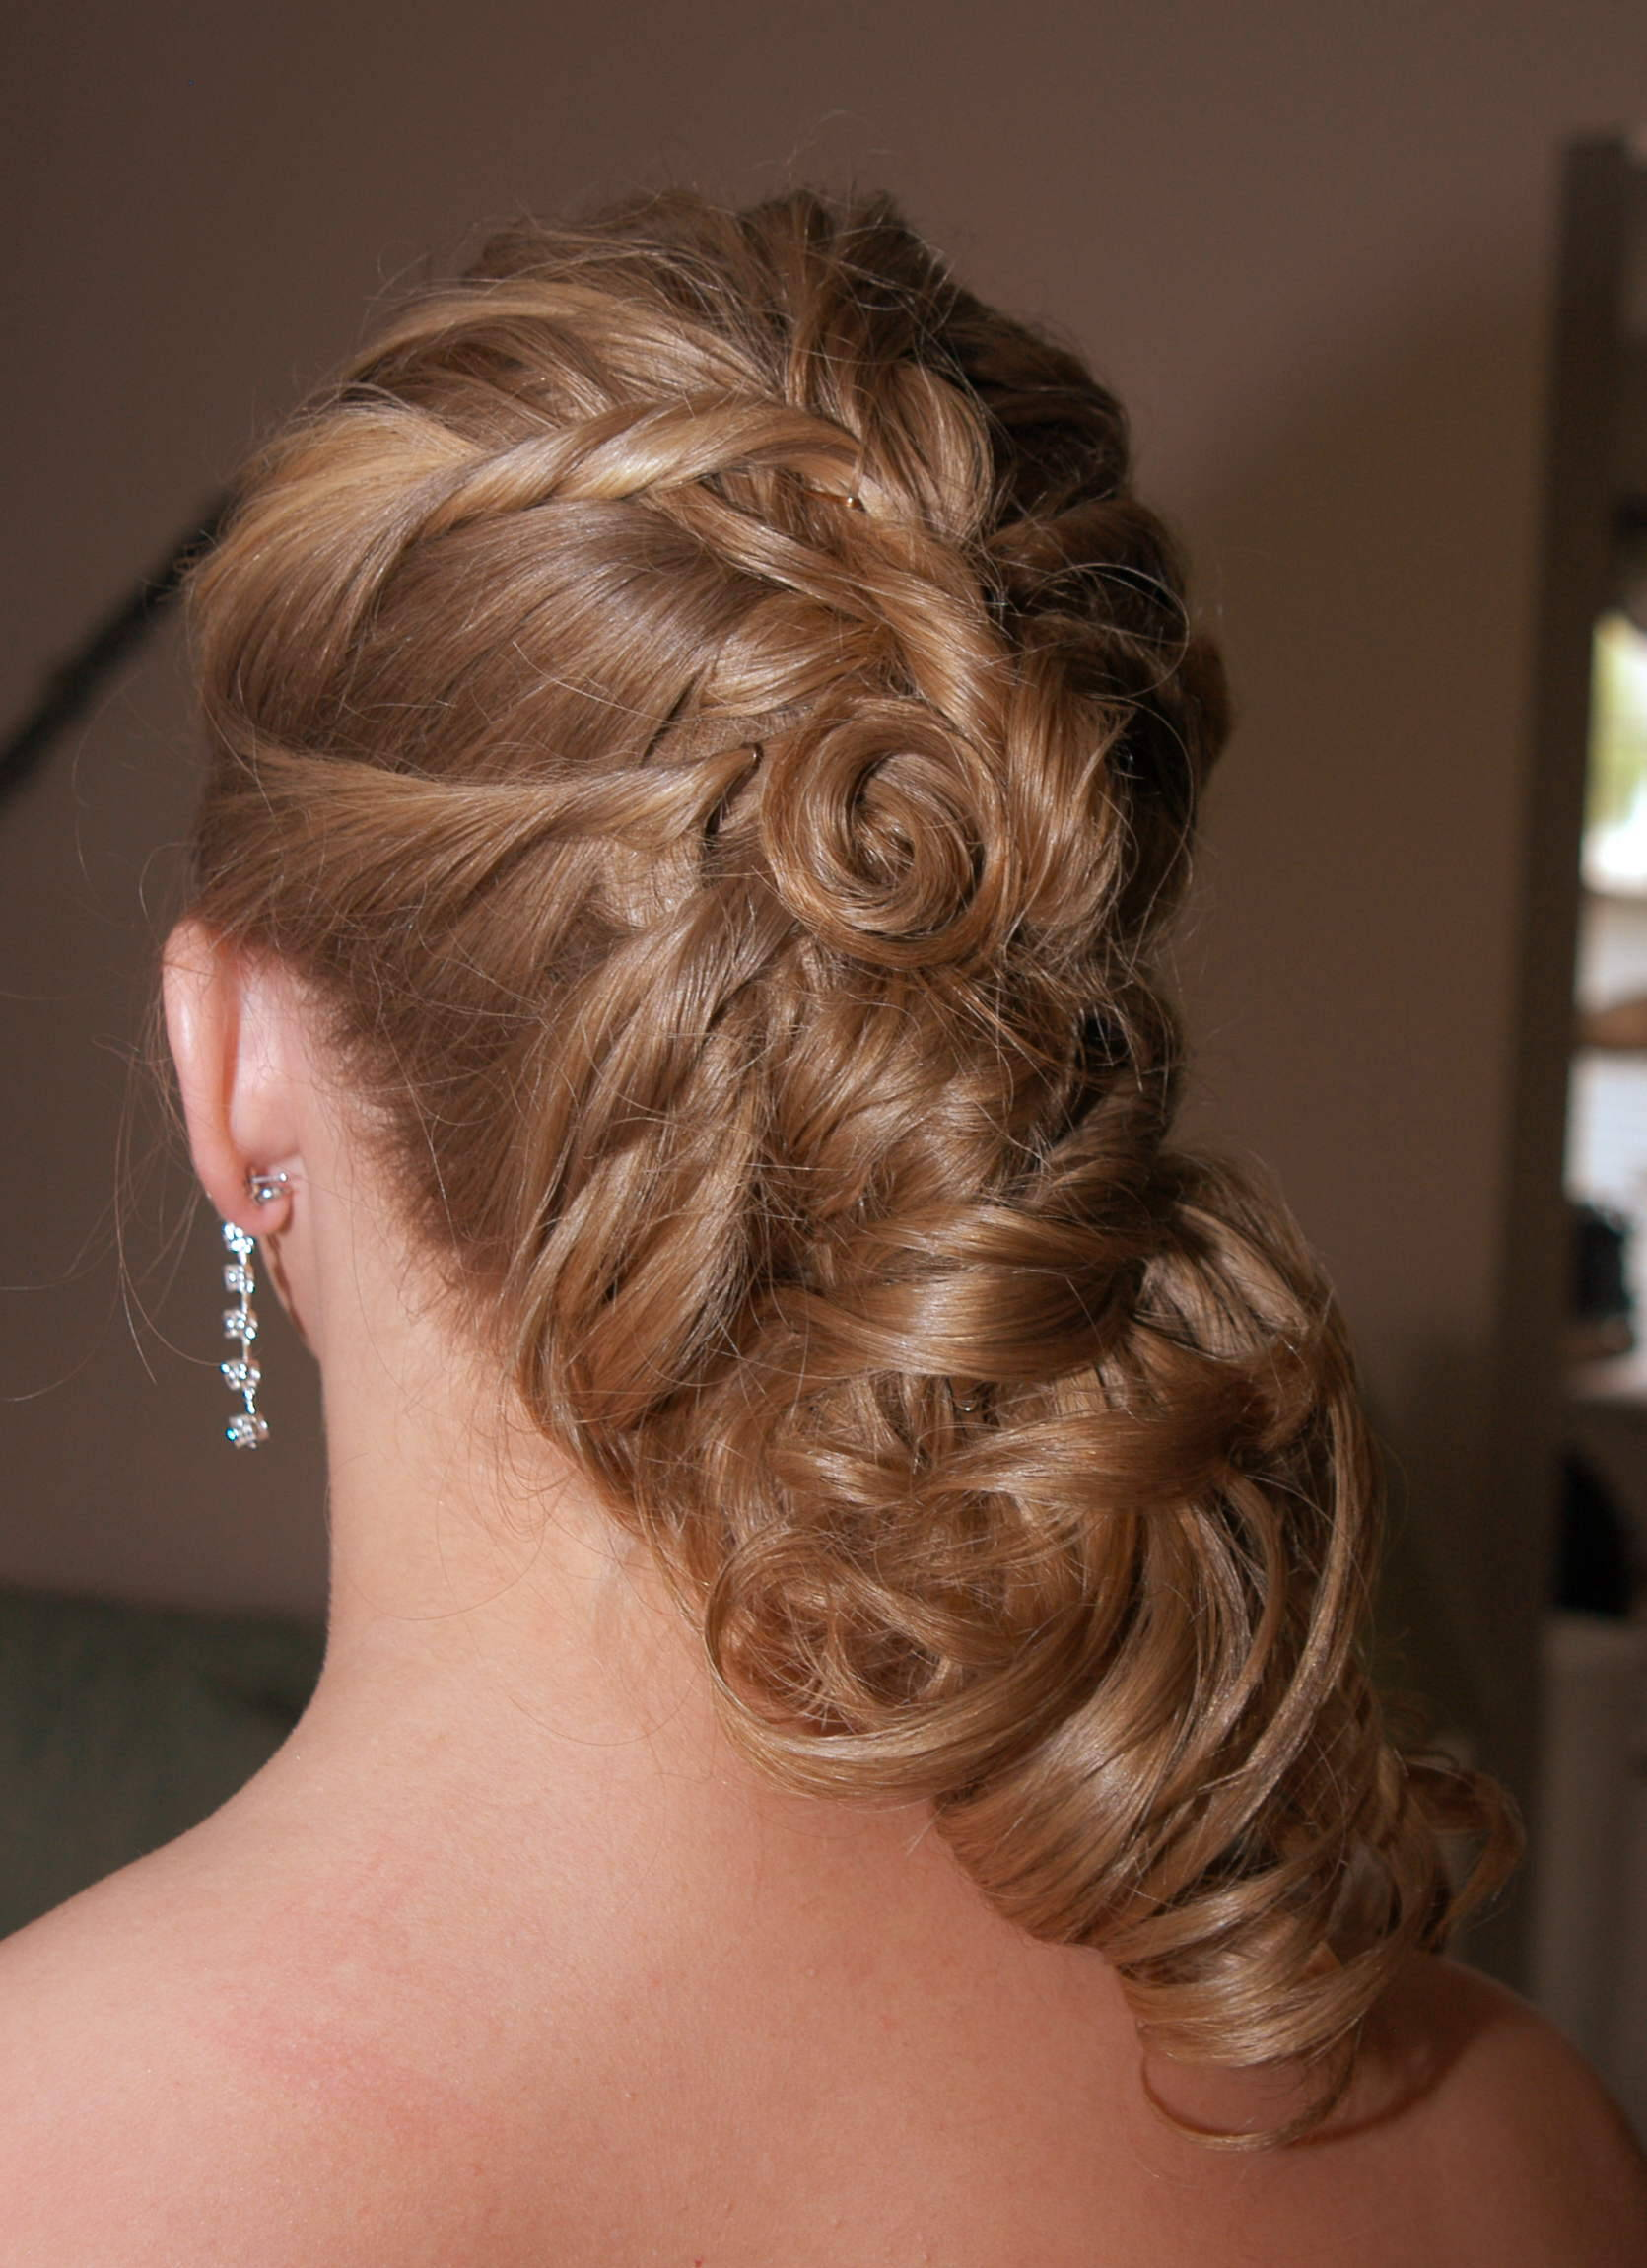 20 Long Curls Hairstyles For Weddings You Can Do At Home